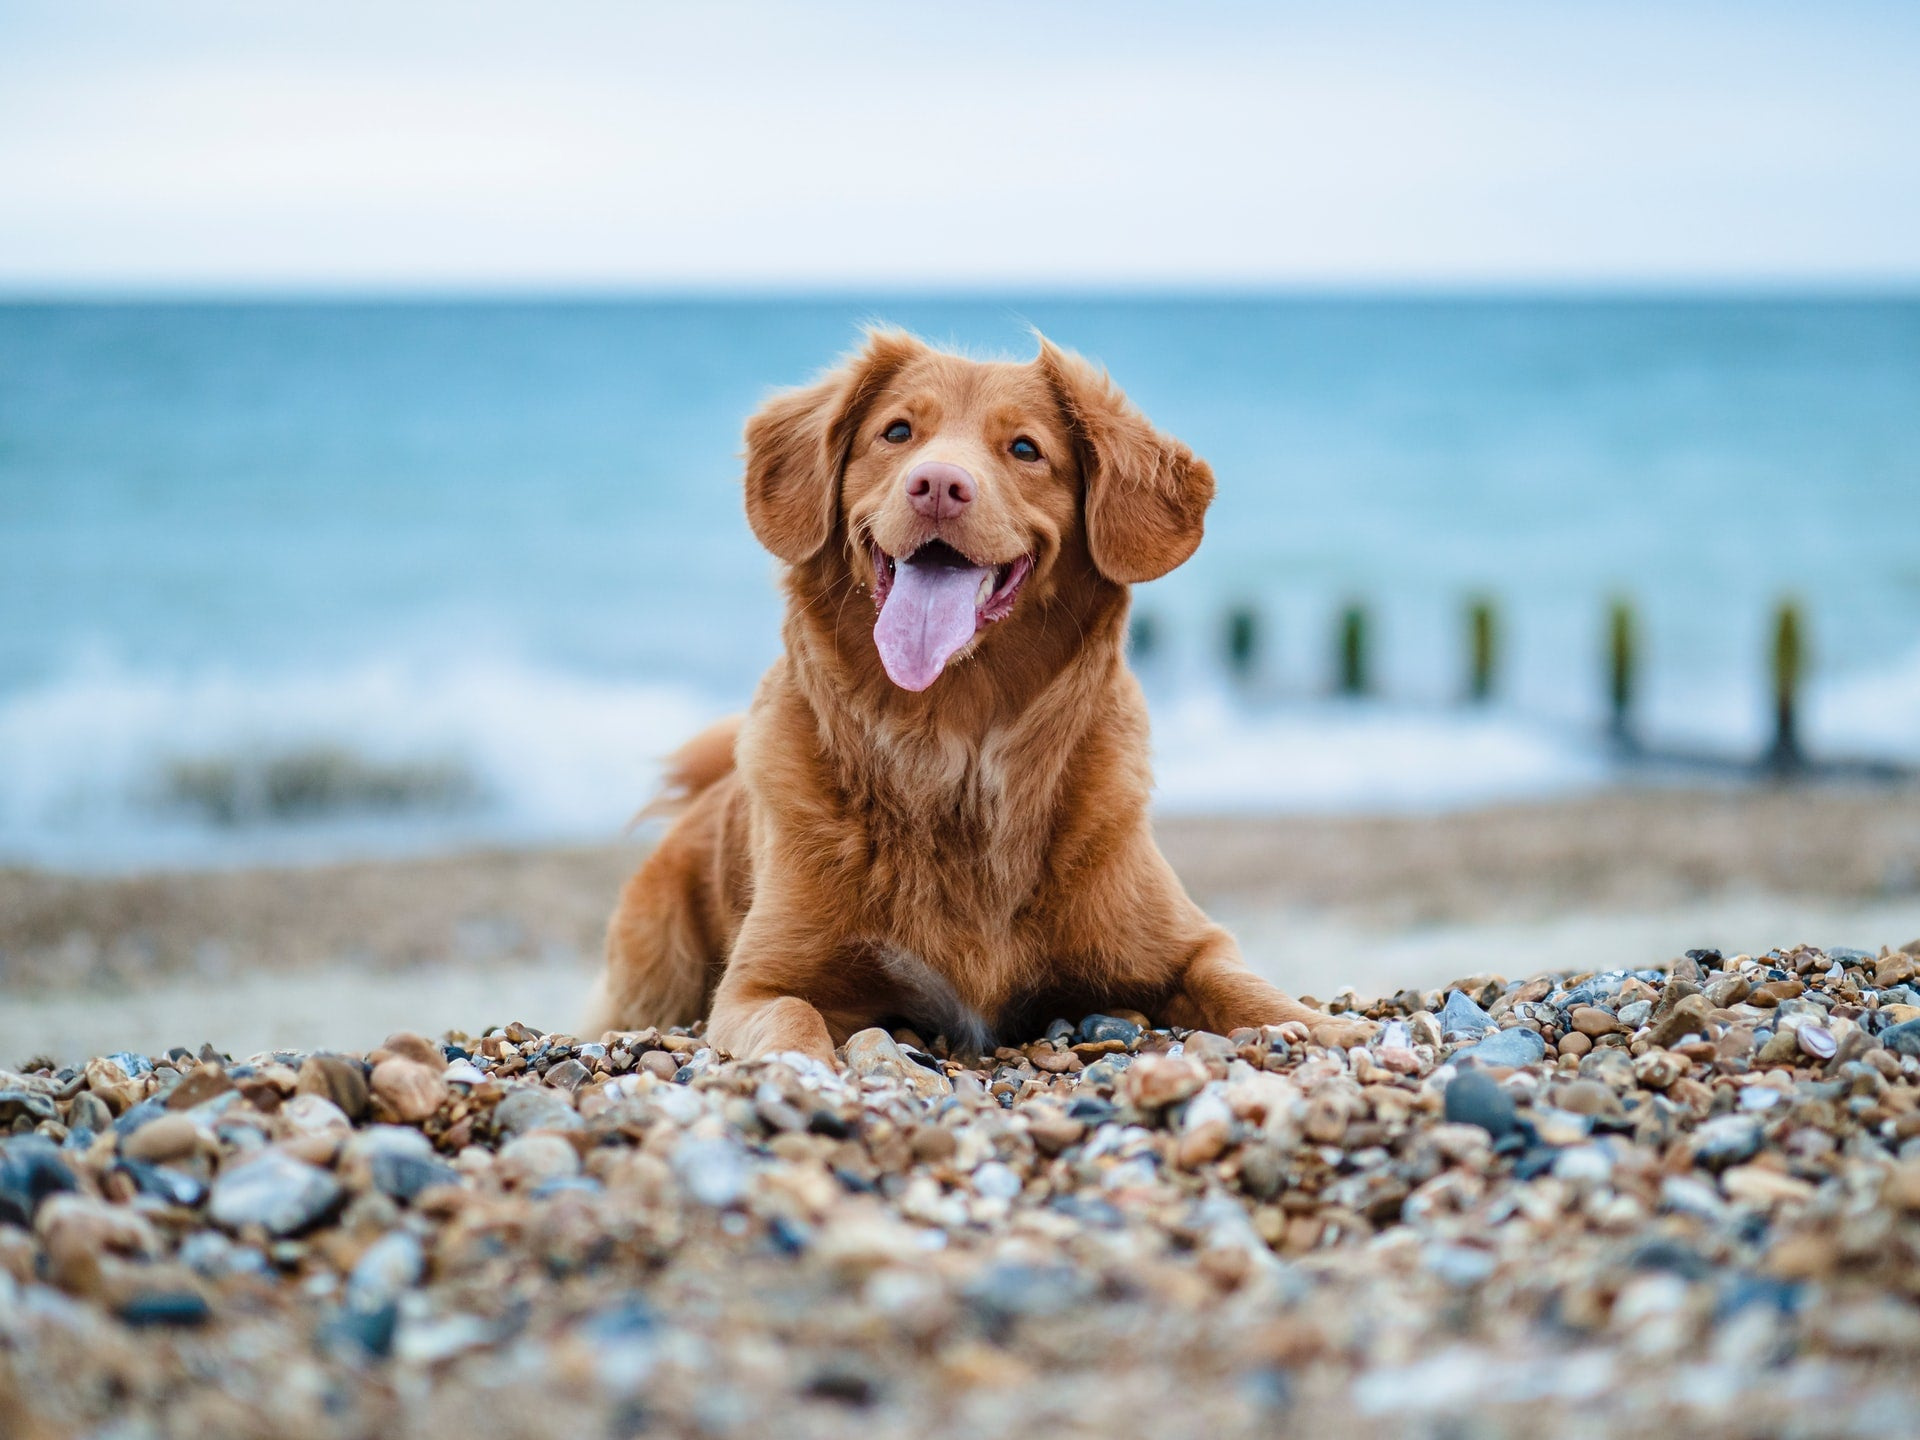 Puppy on a pebbled beach